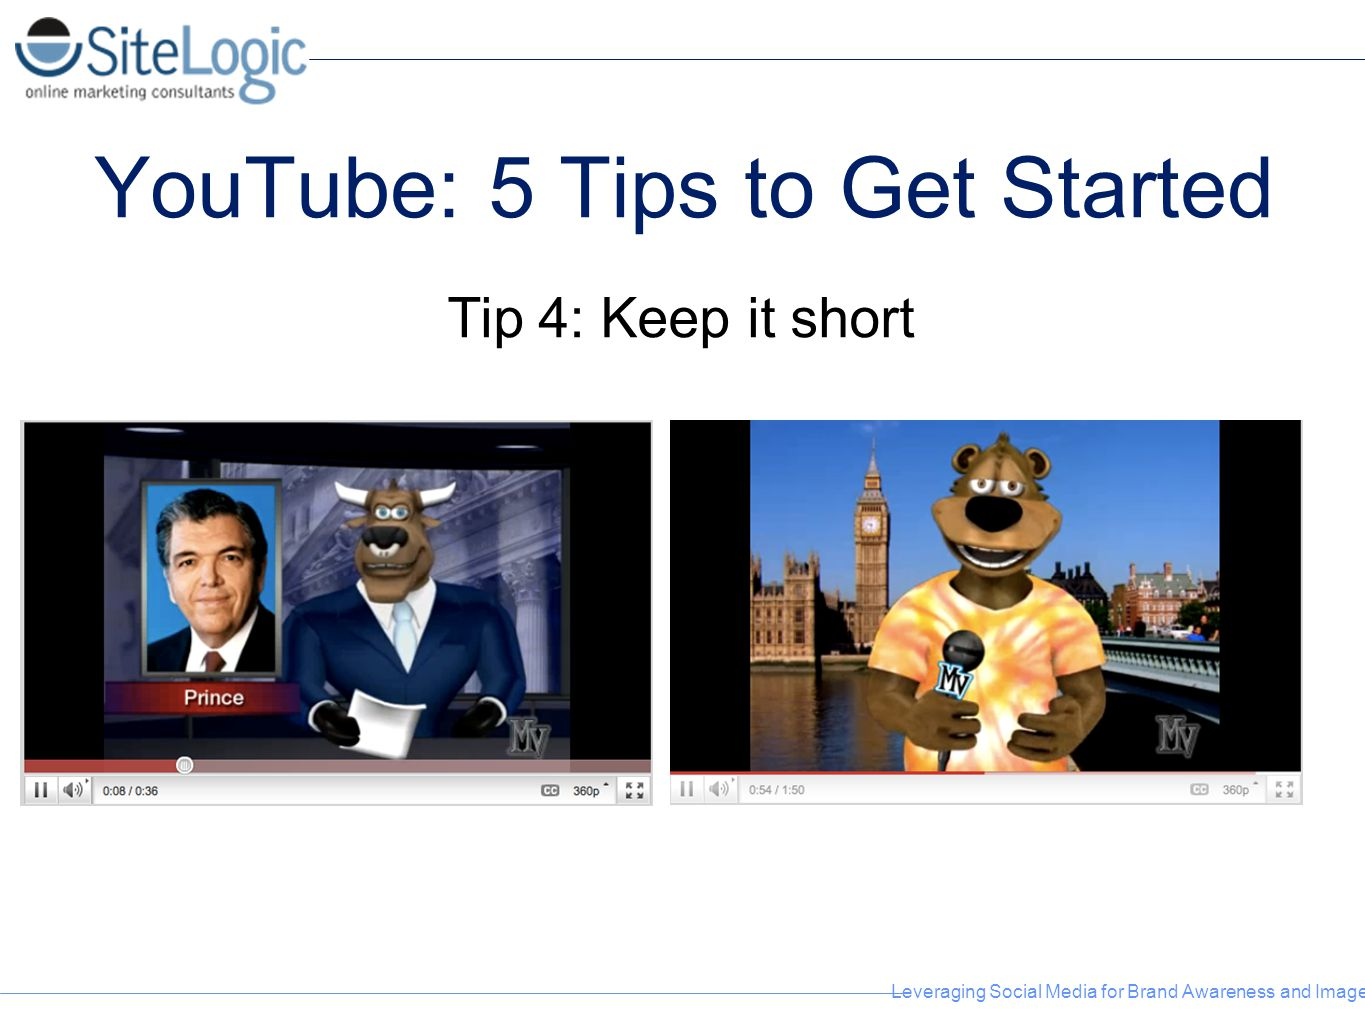 YouTube: 5 Tips to Get Started